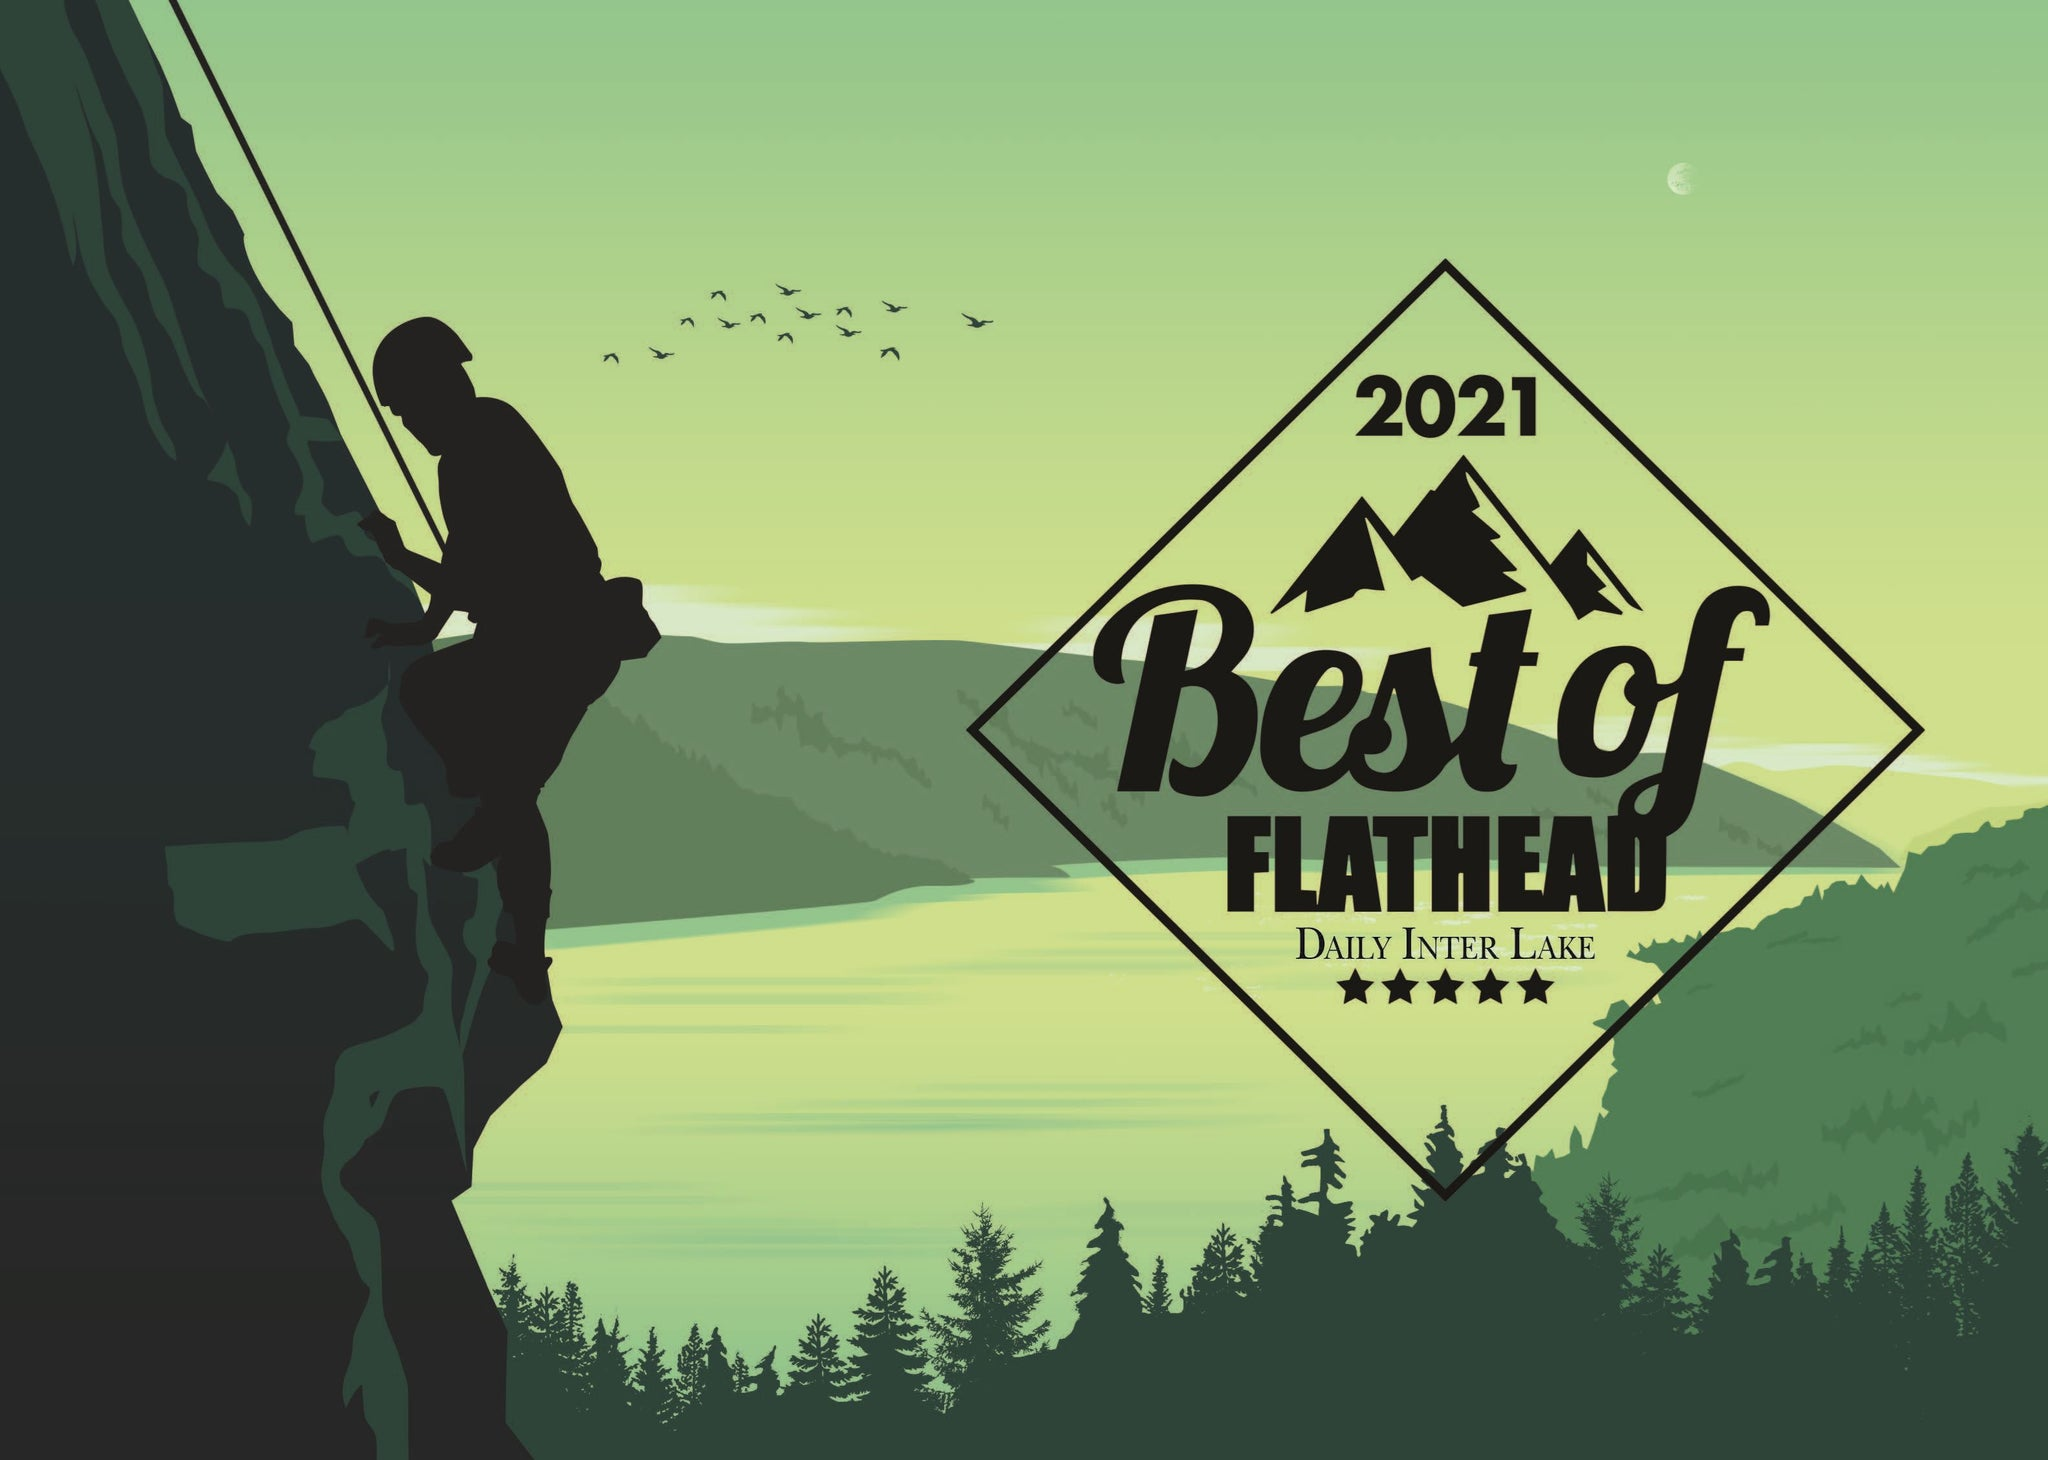 Best of the flathead 2021 Rescue dog